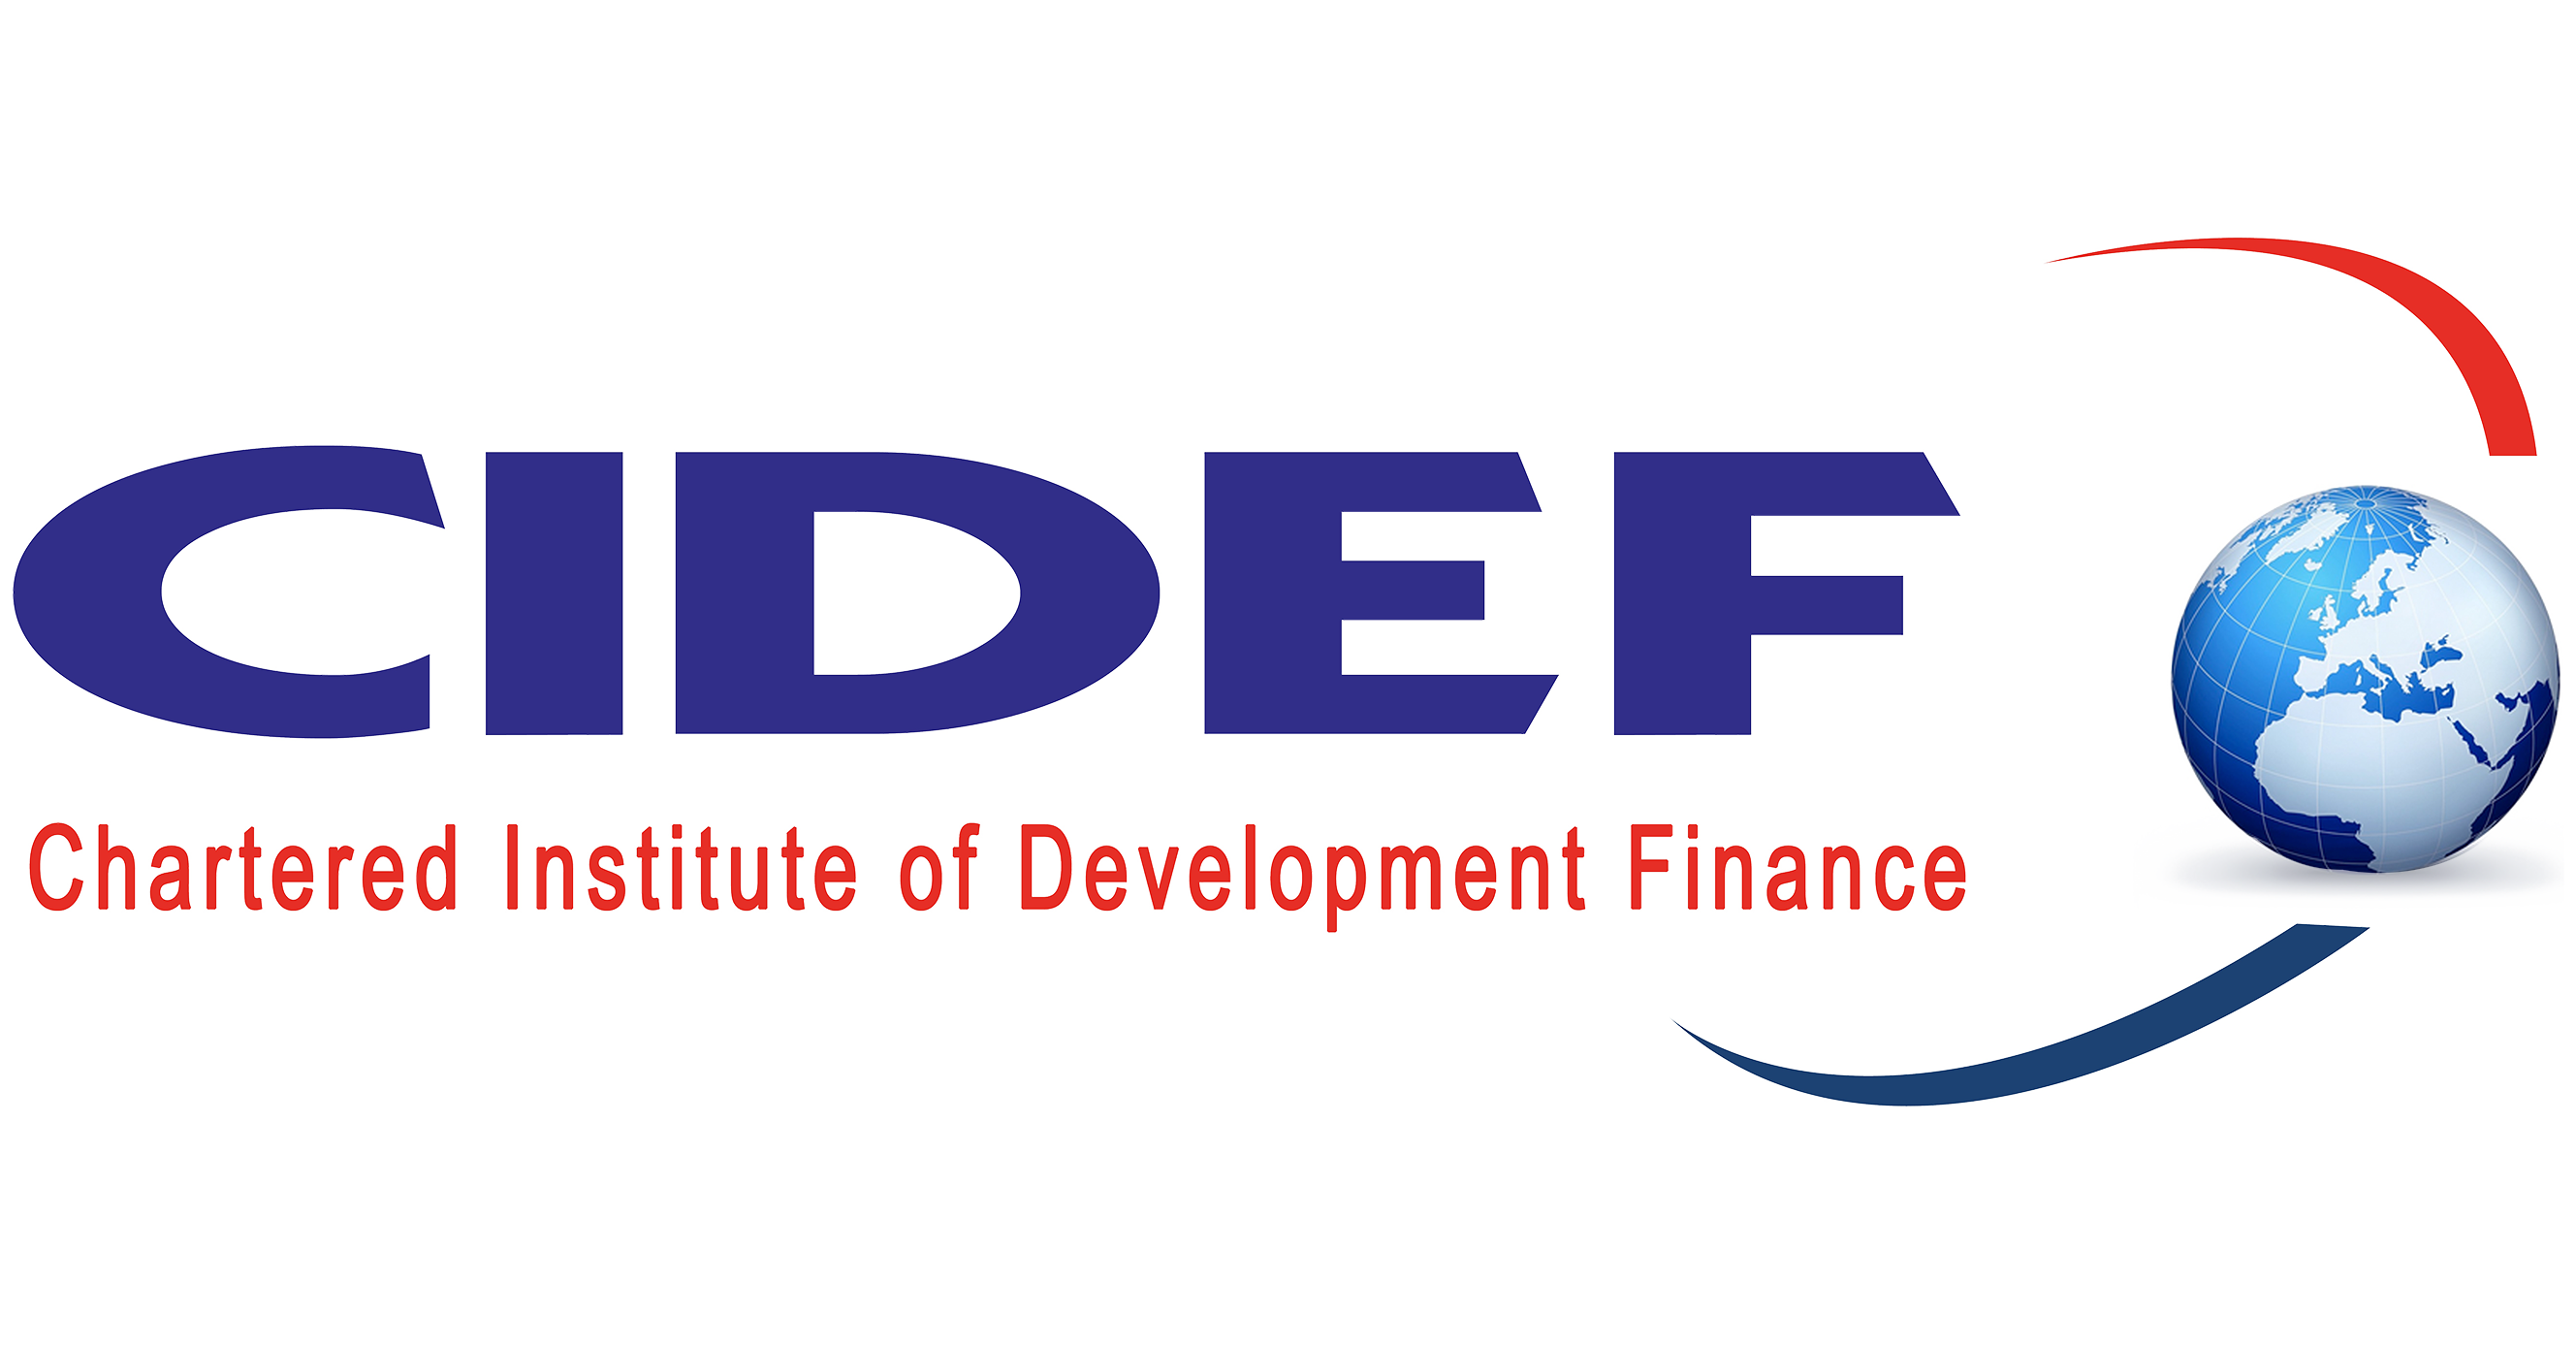 Chartered Institute of Development Finance